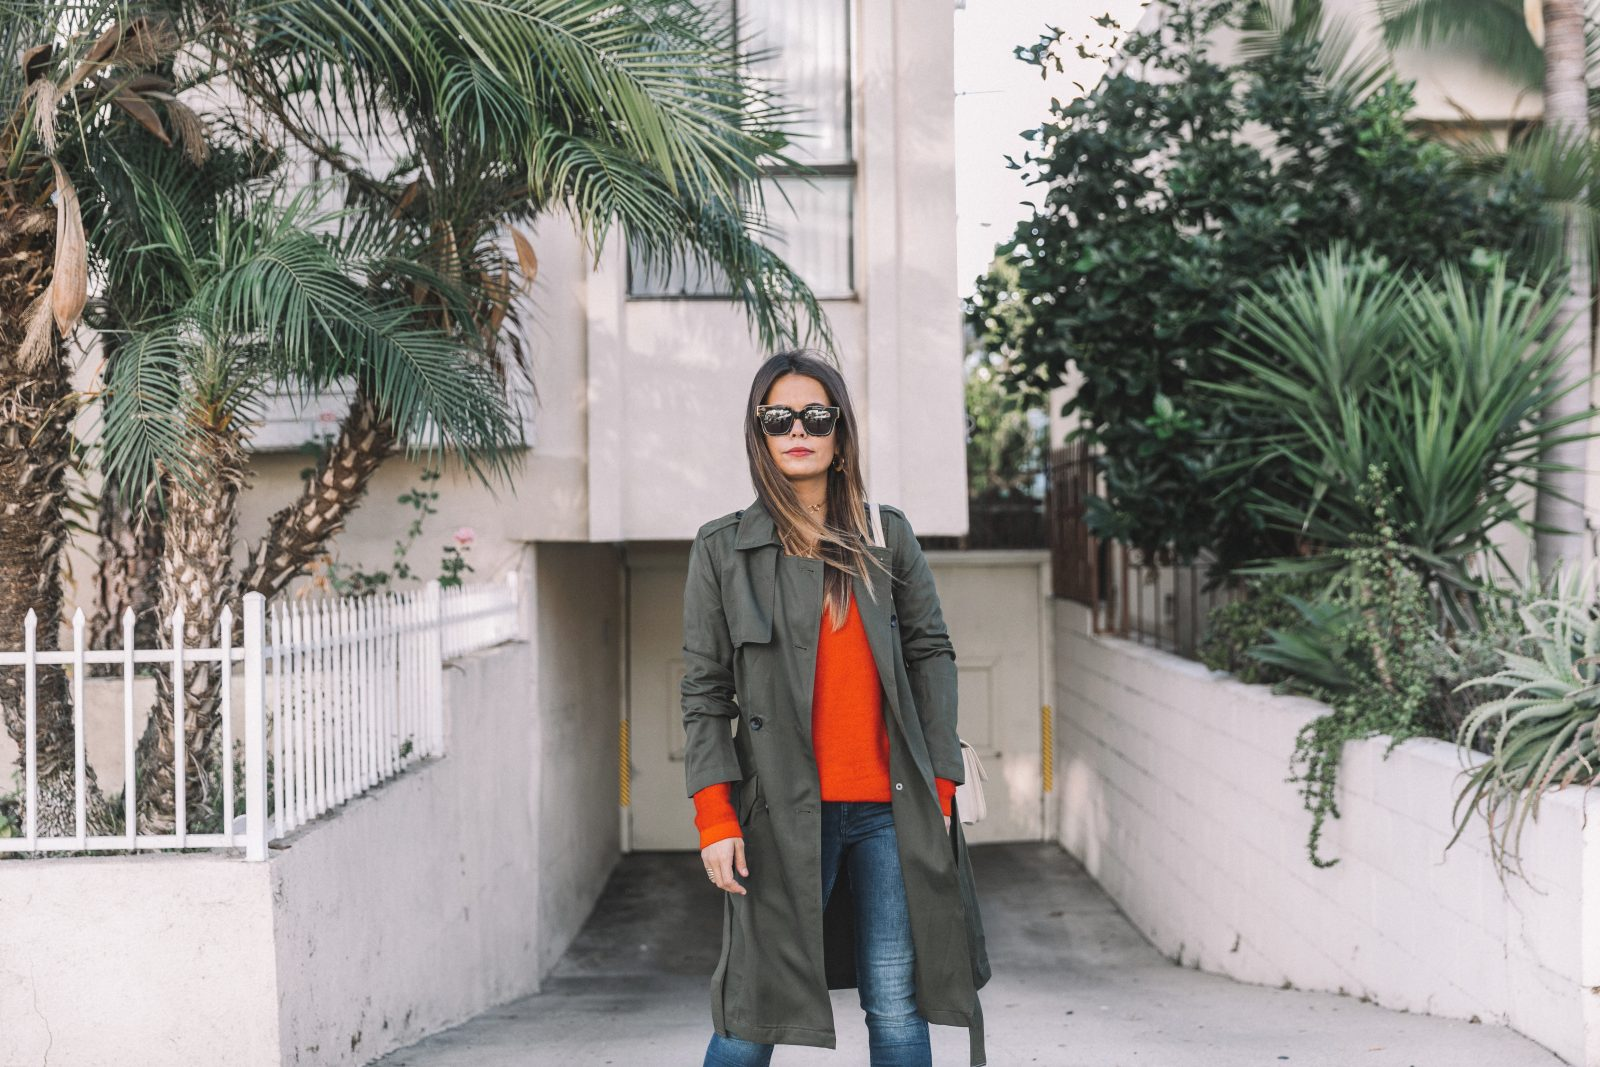 calvin_klein_outfit-ck_sculpted_jeans-denim-trench-orange_sweater-gold_shoes-celine_box_bag-outfit-street_style-los_angeles-collage_vintage